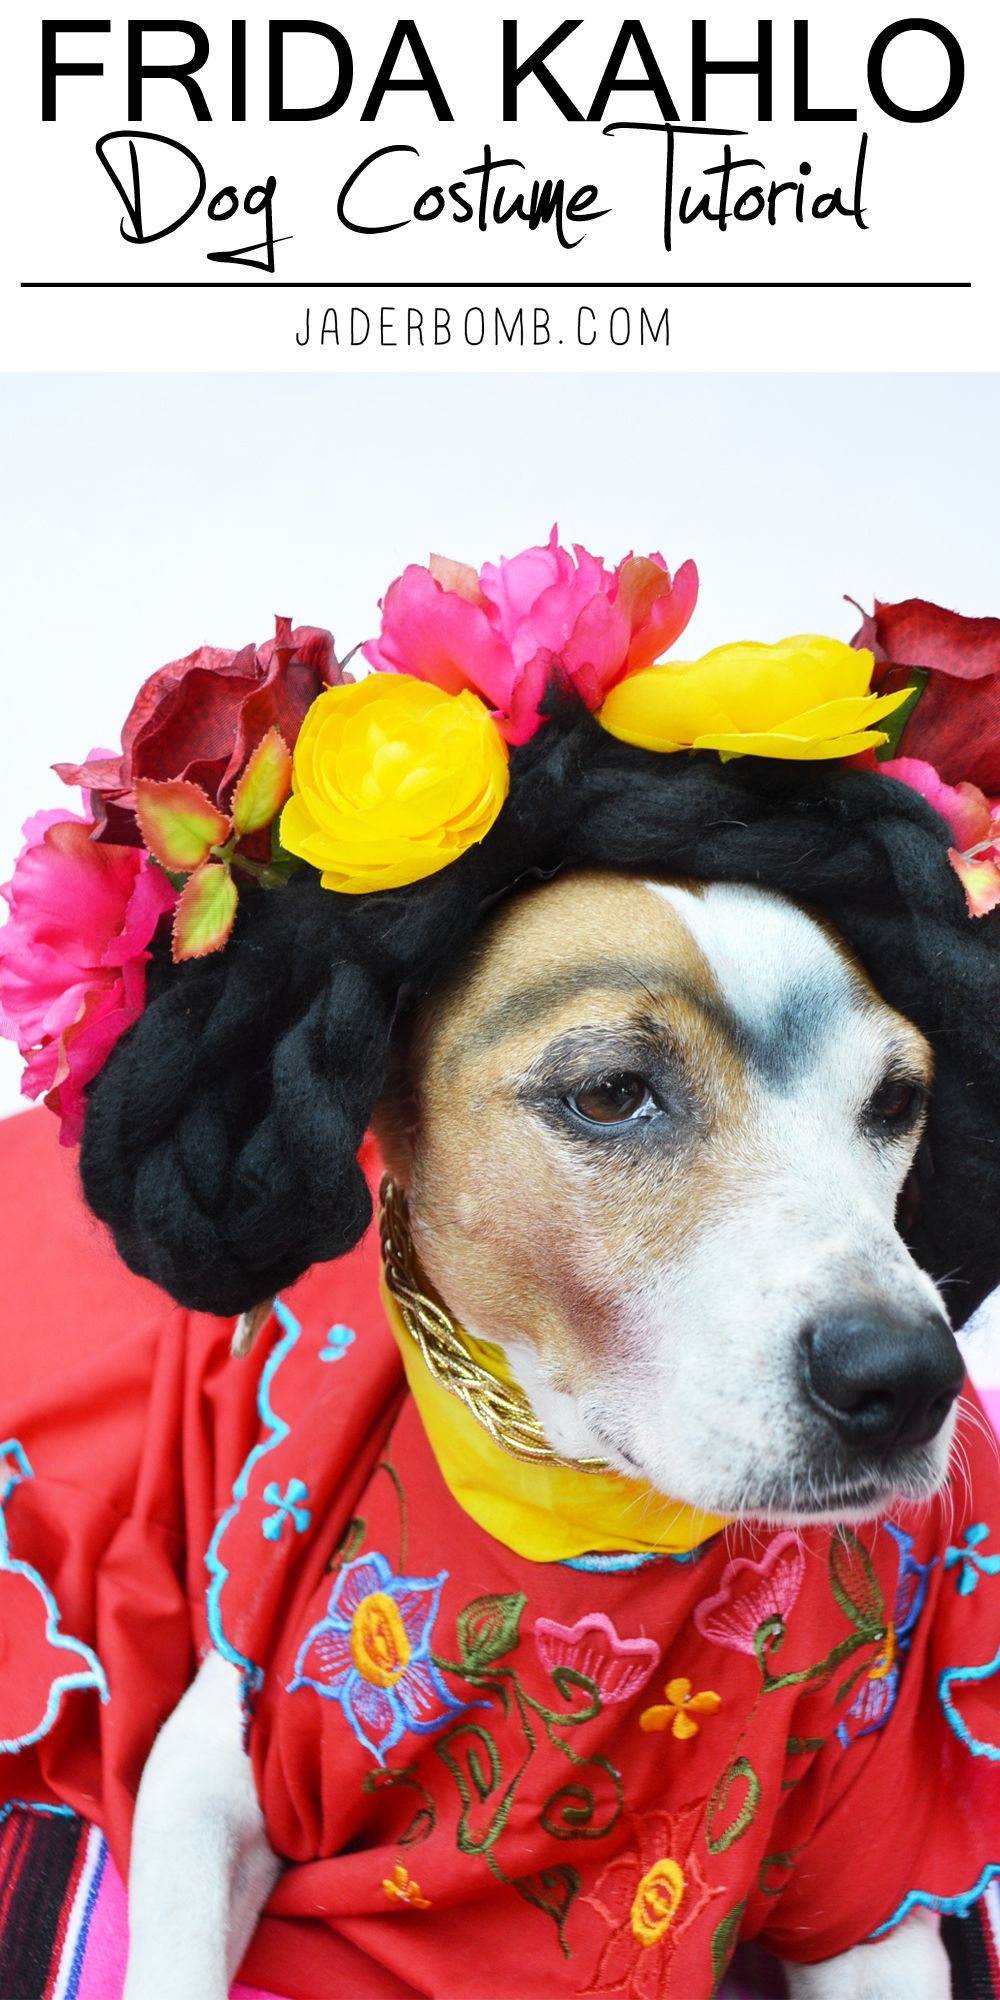 Diy frida kahlo dog costume tutorial from michaelsmakers jaderbomb diy frida kahlo dog costume tutorial from michaelsmakers jaderbomb solutioingenieria Image collections